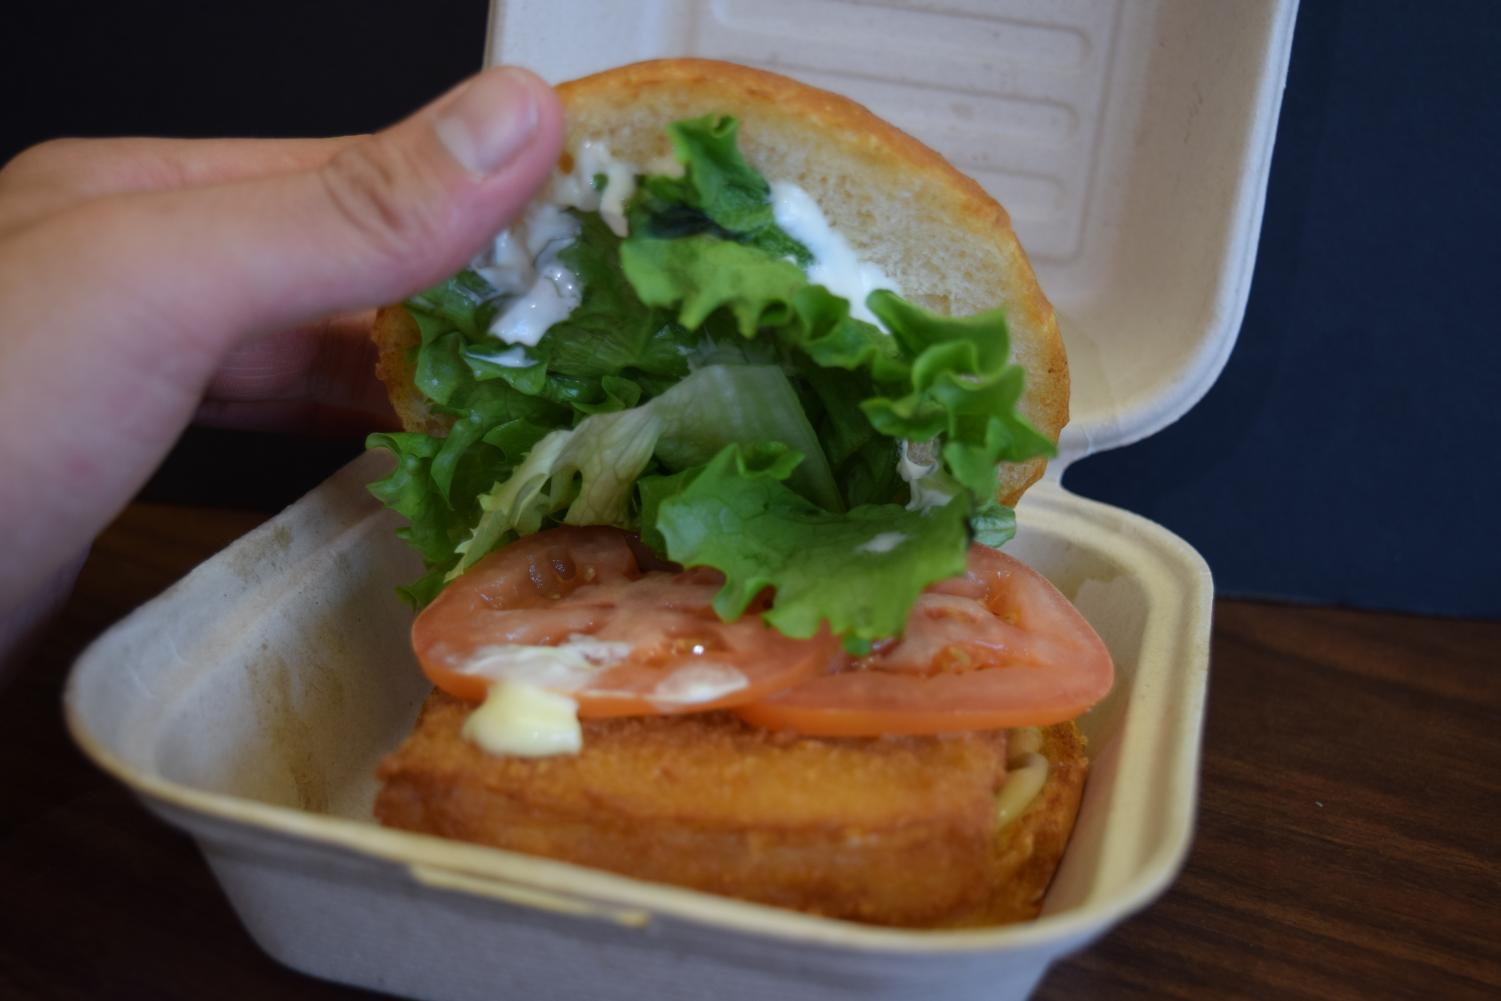 Beep's Burgers on Ocean Avenue, has a sea-worthy fish sandwich that is a perfect choice for Fridays in Lent.